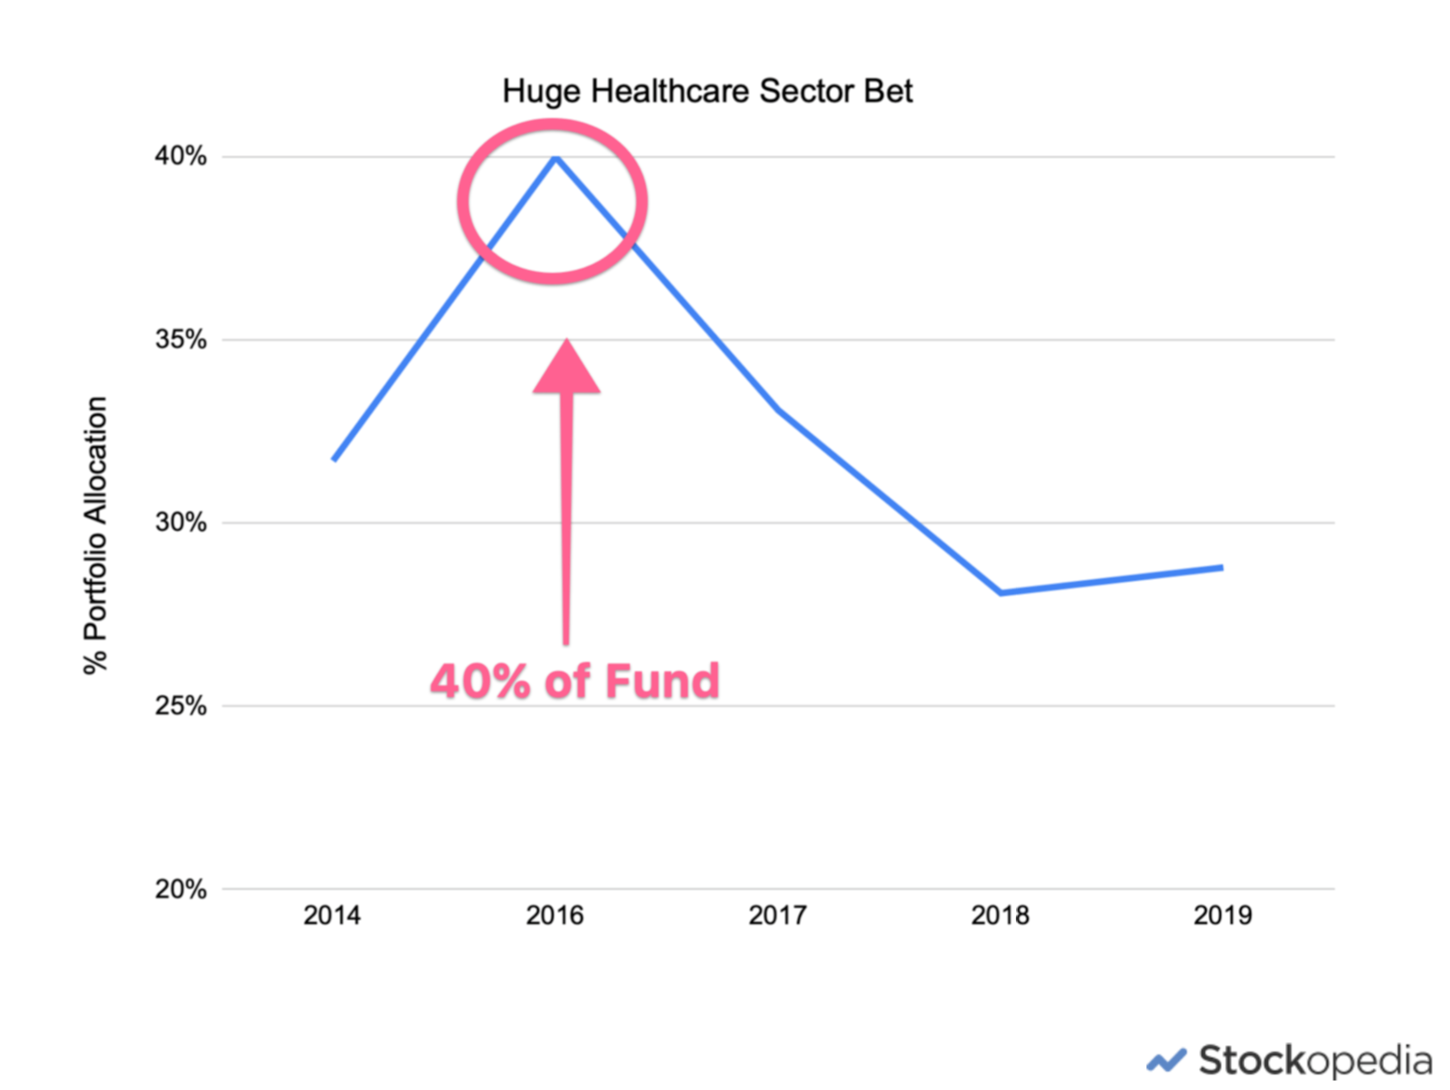 Woodford Equity Income Fund - huge healthcare bet